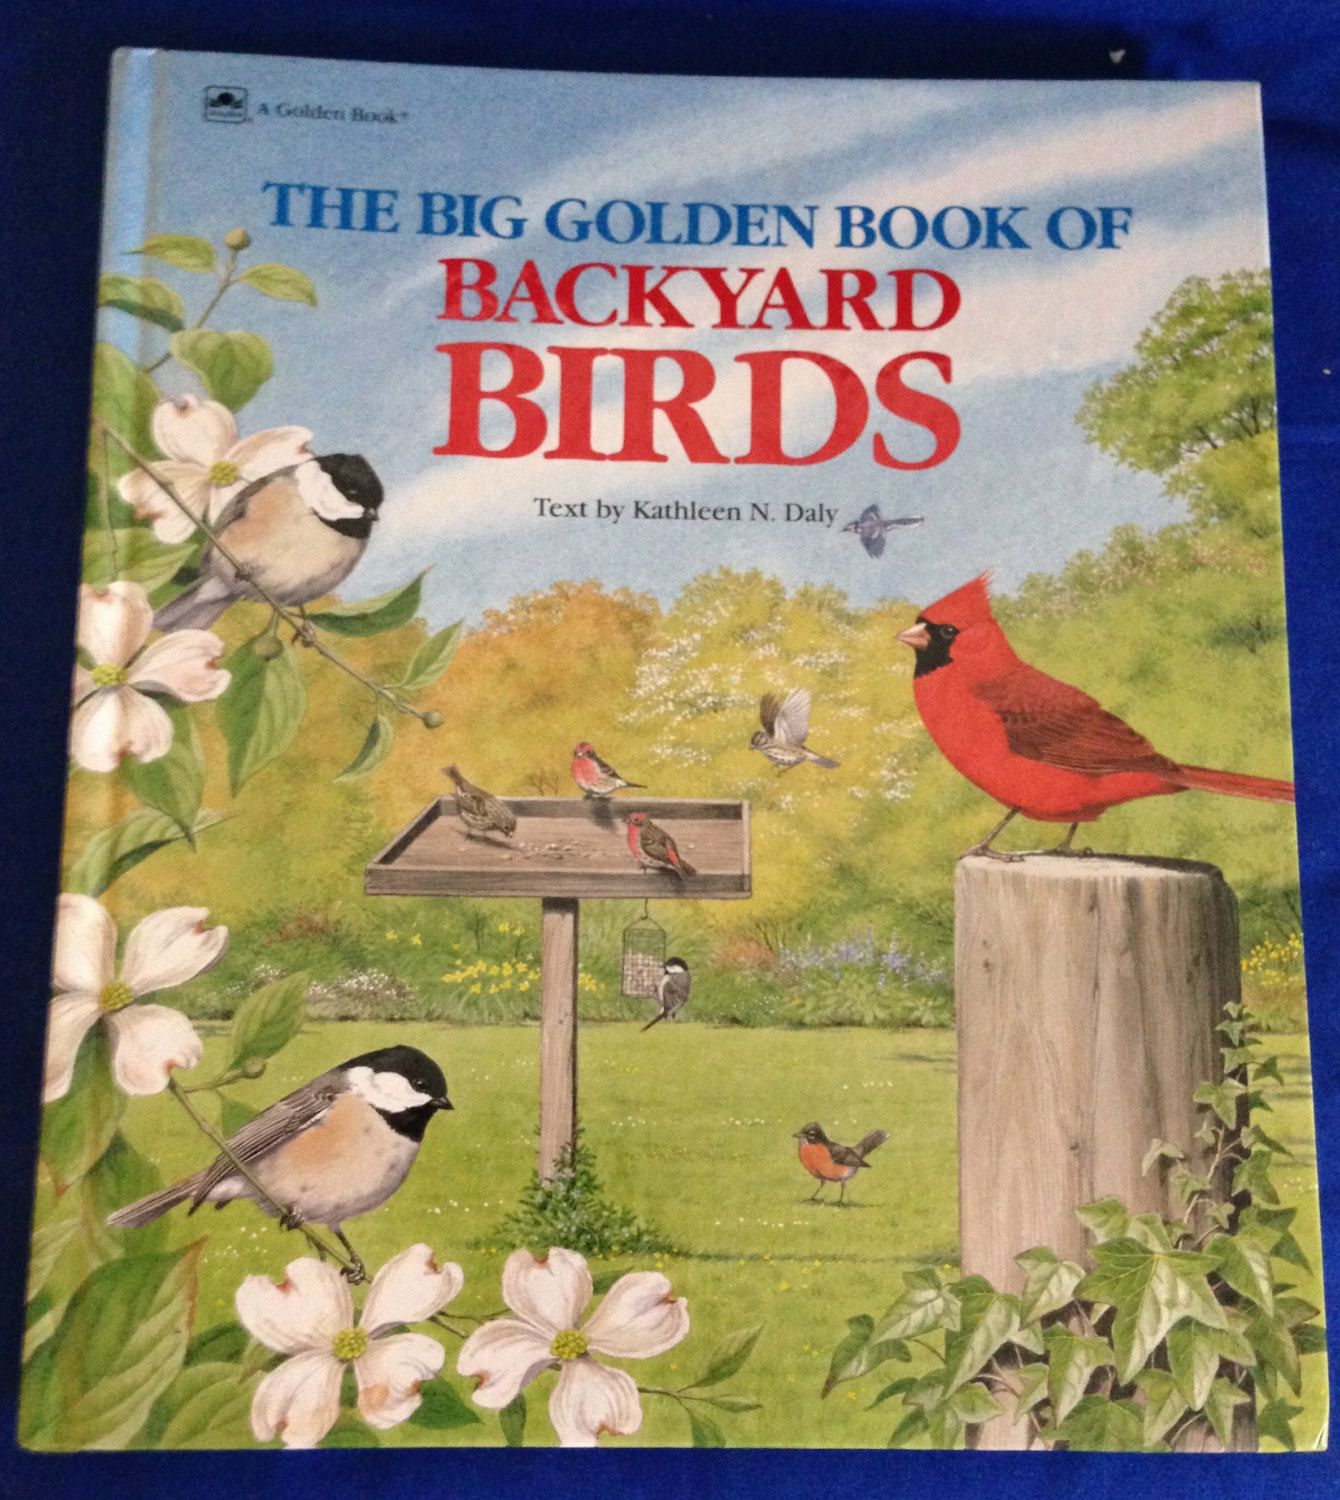 the big golden book of backyard birds by kathleen n daly a